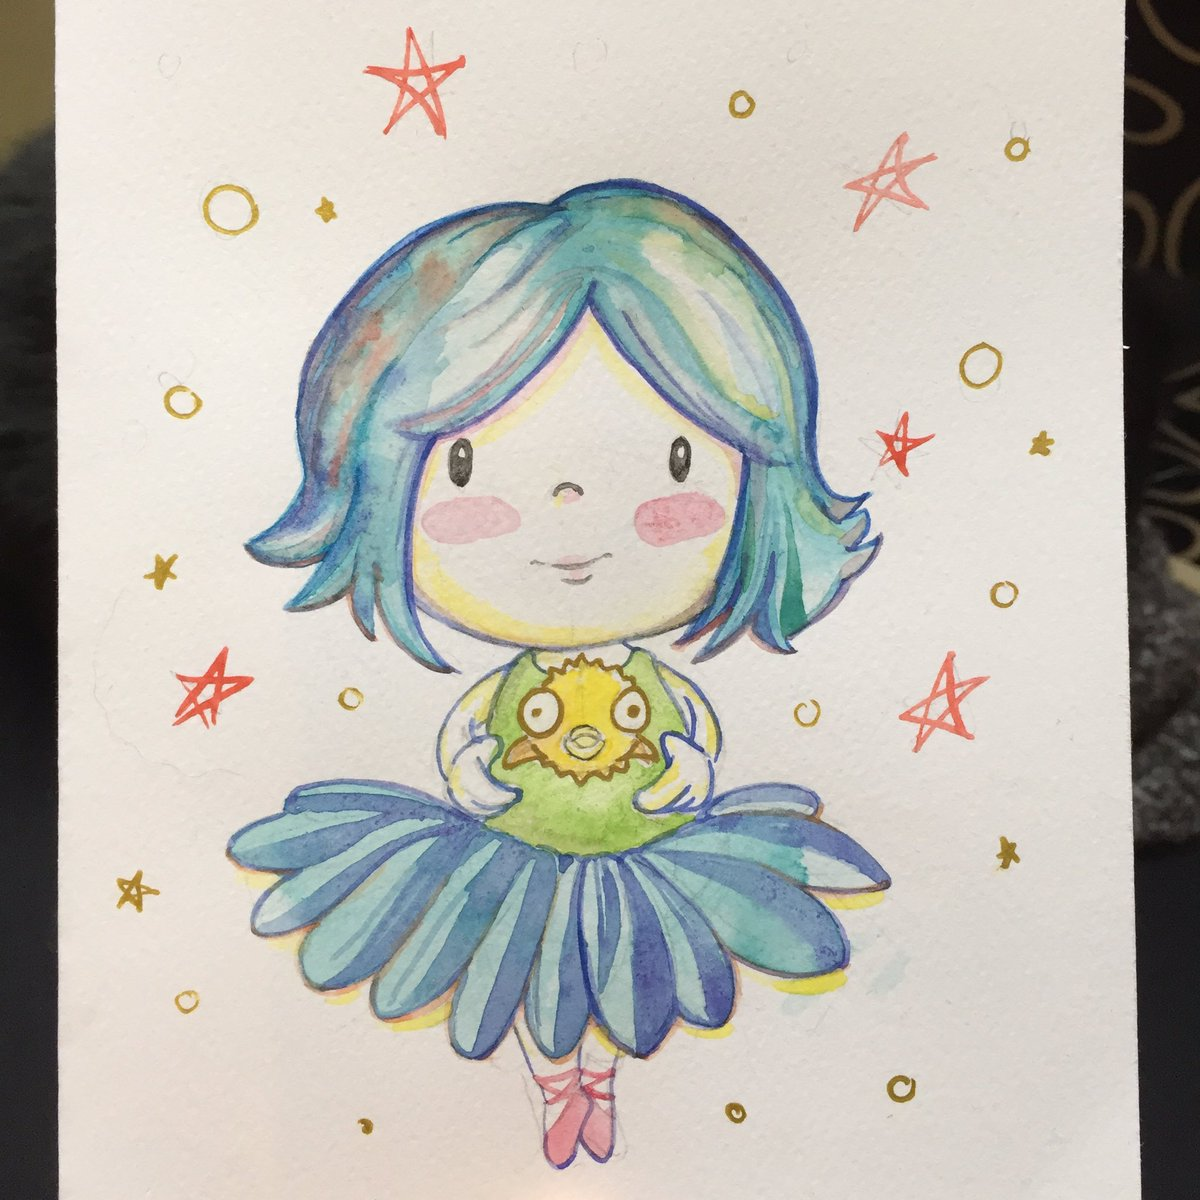 #lucytheoctopus as a #human #balletdancer holding #puffy the #pufferfish!!! Love this! Art by @hello_vannim , commissioned by @Minximation<br>http://pic.twitter.com/BlkSJdYrE1